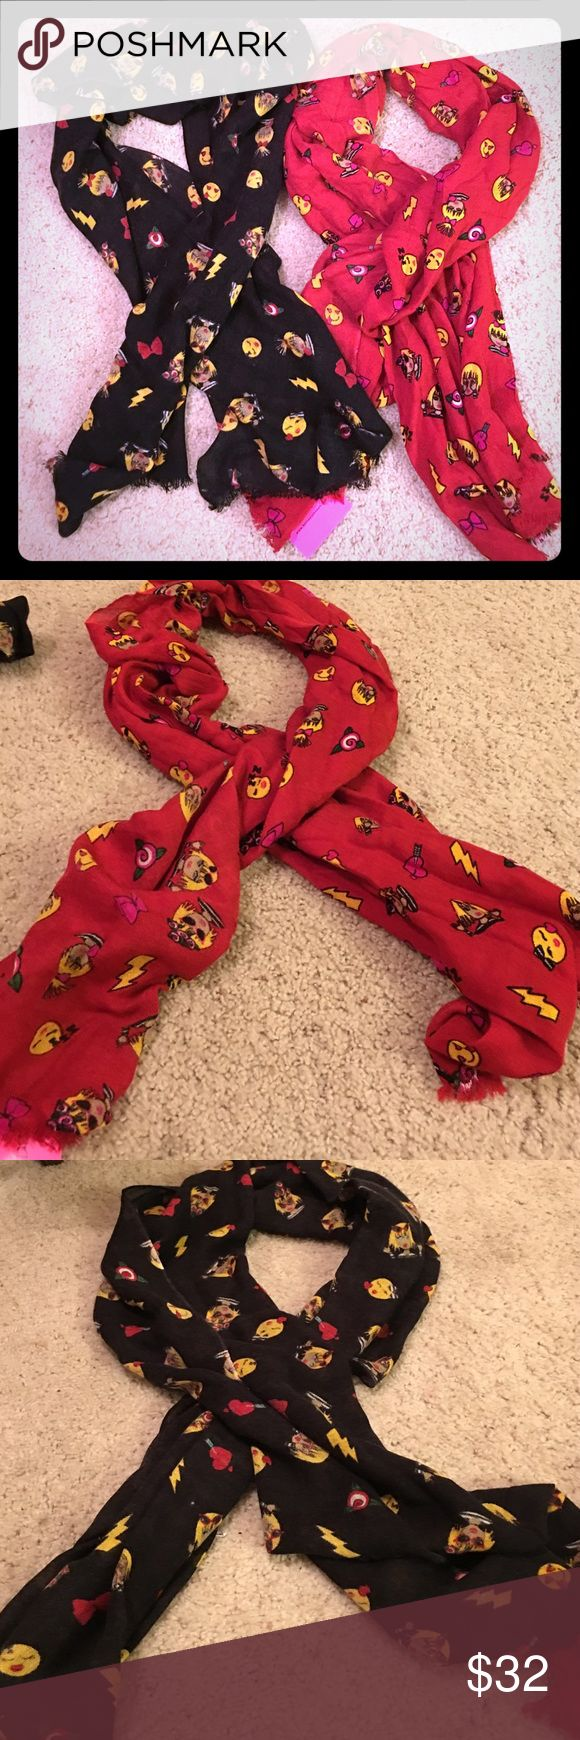 """NWT Betsey Johnson """"Betsey's Emoji Scarf"""" 2 Pc Set 2 Piece Set includes one BNWT Betsey Johnson """"Betsey's Emoji Scarf"""" in Red and one BNWOT """"Betsey's Emoji Scarf"""" in Black. Each is originally priced at $48 (total of $96) I'm asking $32 for both. Betsey Johnson Accessories Scarves & Wraps"""